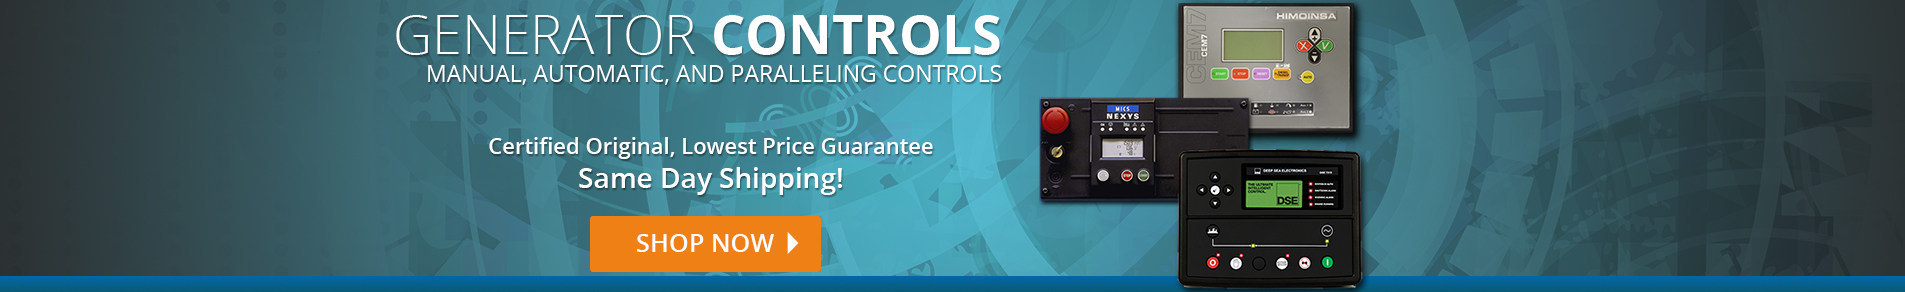 Generator Control panels in Stock, Deepsea, SDMO, Basler, ComAp, Hipower and more